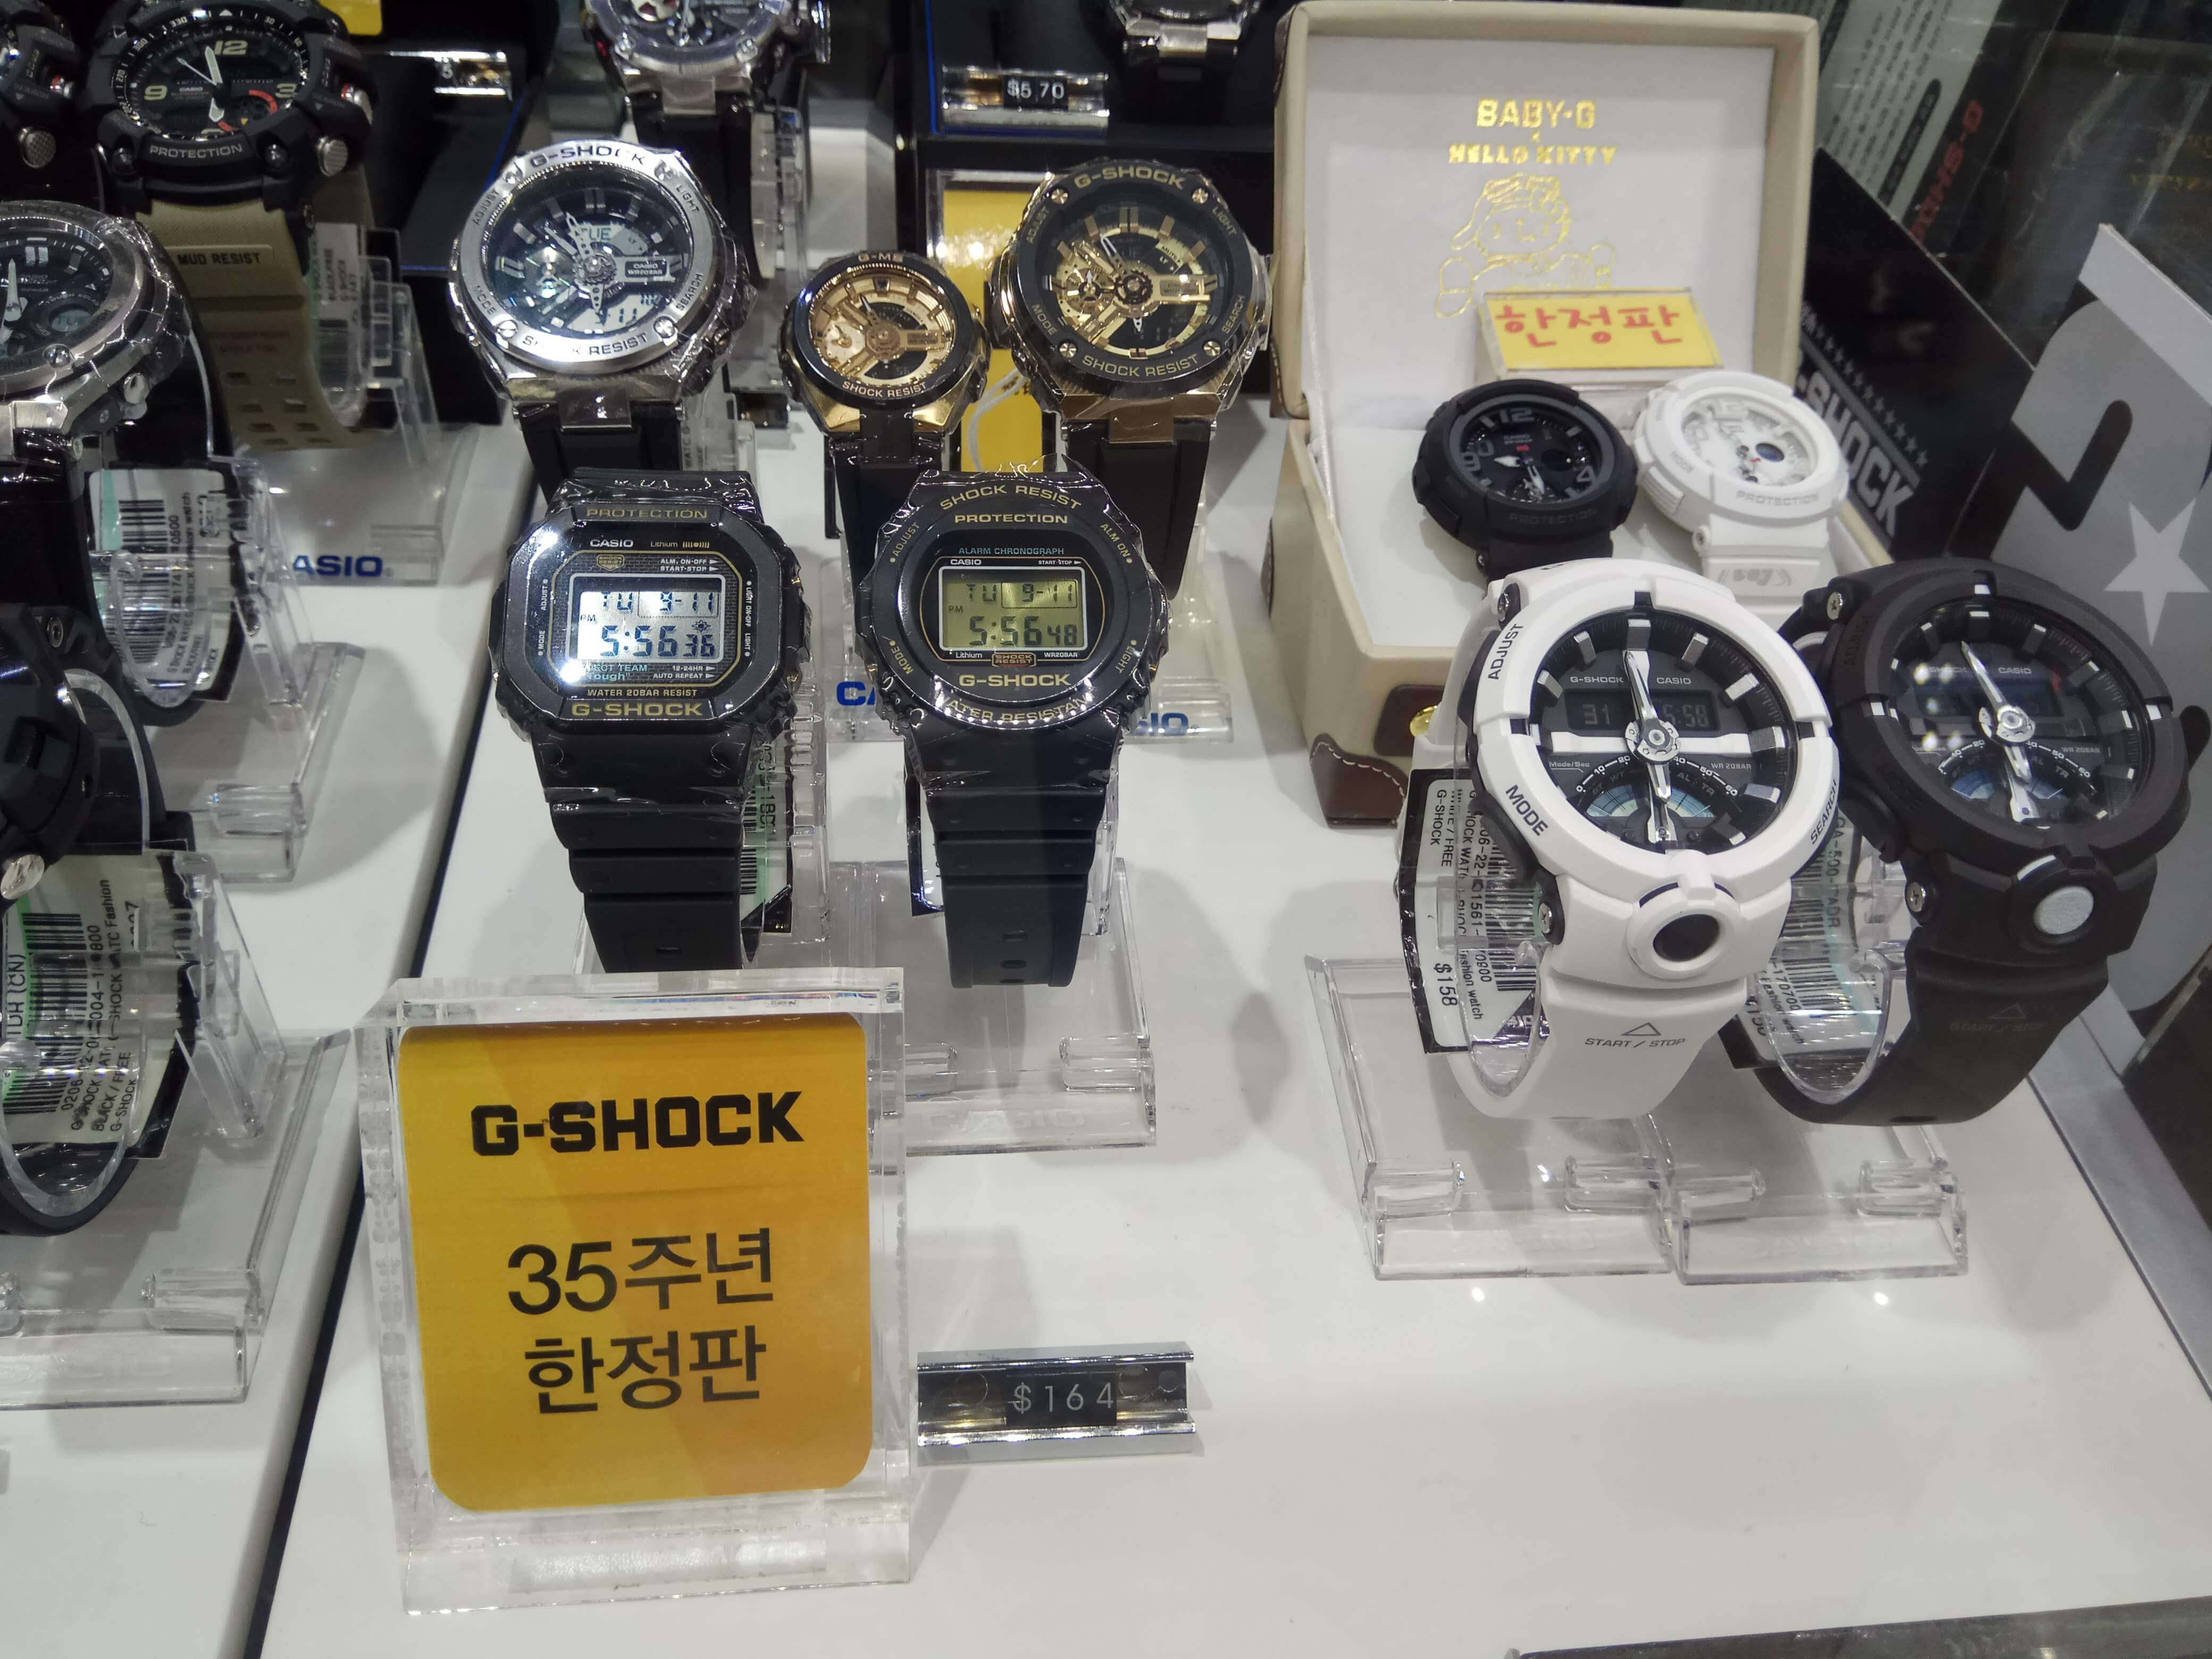 G Shock And Baby G Shopping In Incheon Airport South Korea